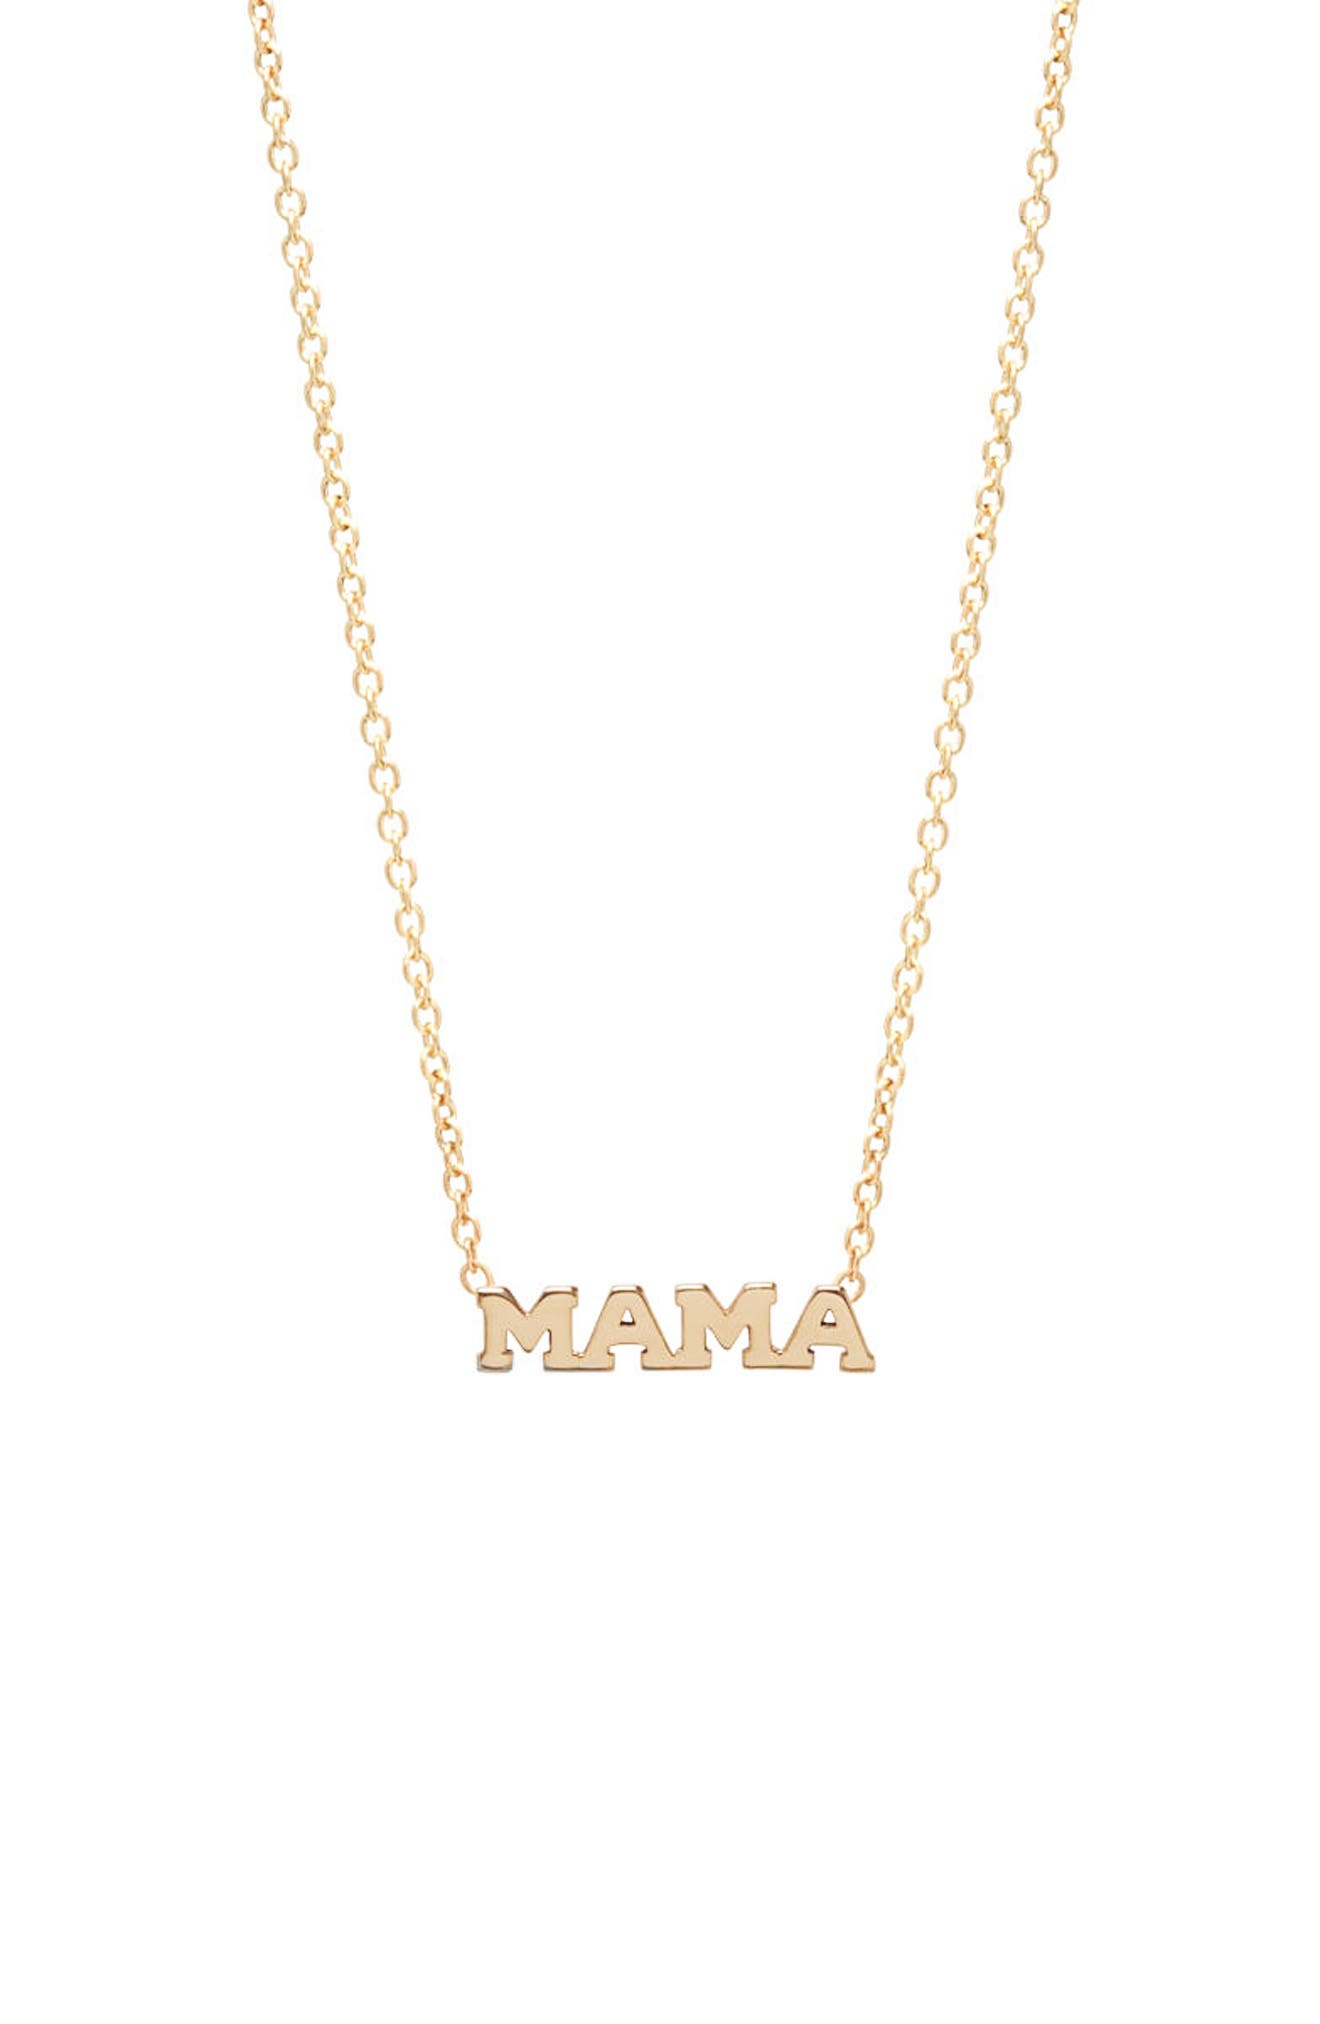 Itty Bitty Mama Pendant Necklace,                             Main thumbnail 1, color,                             YELLOW GOLD